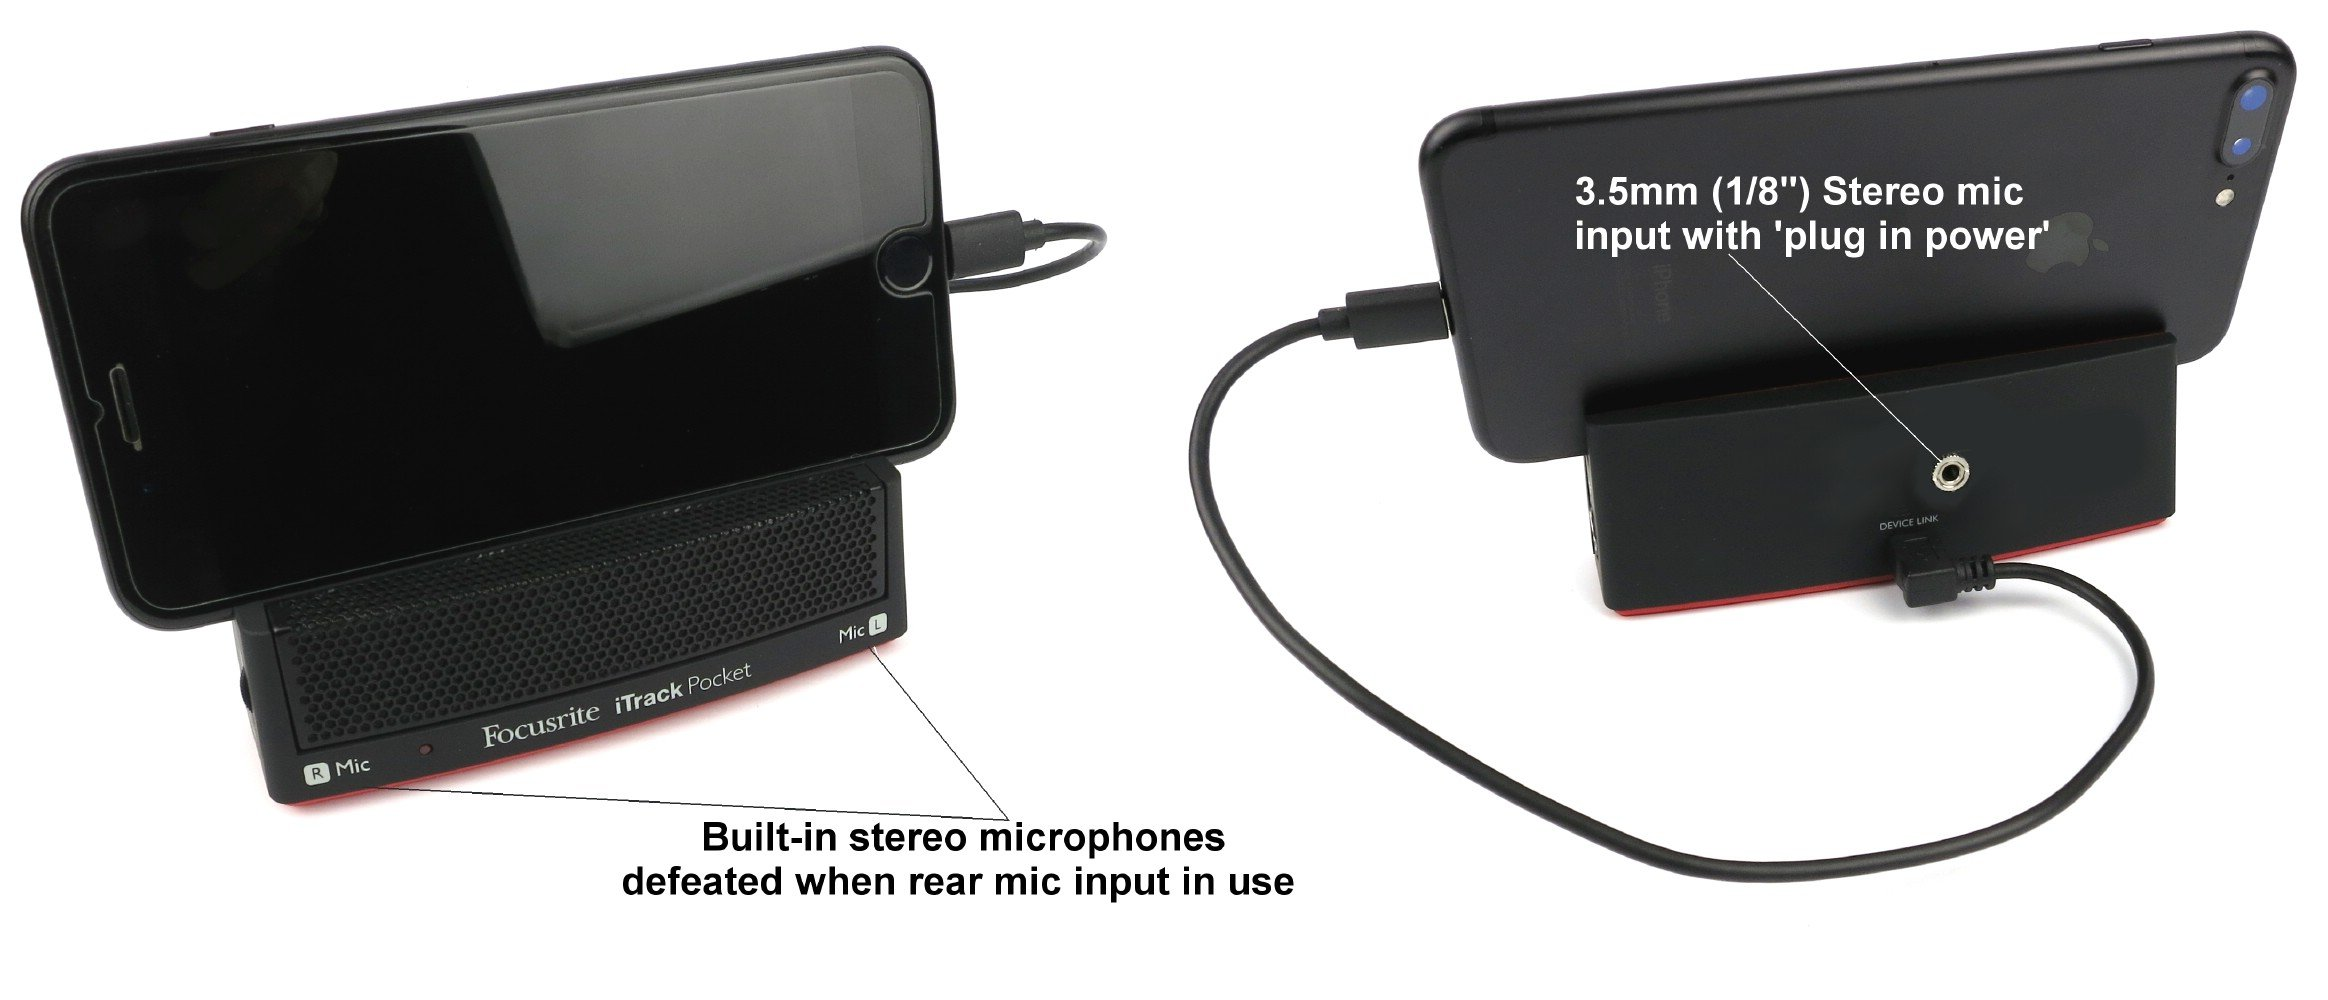 FR-ITRACK-POCKET-MOD - Stereo Microphone/Interface modified to include external mic jack - connects Stereo microphones to an iOS devices with Lightning connector by Sound Professionals